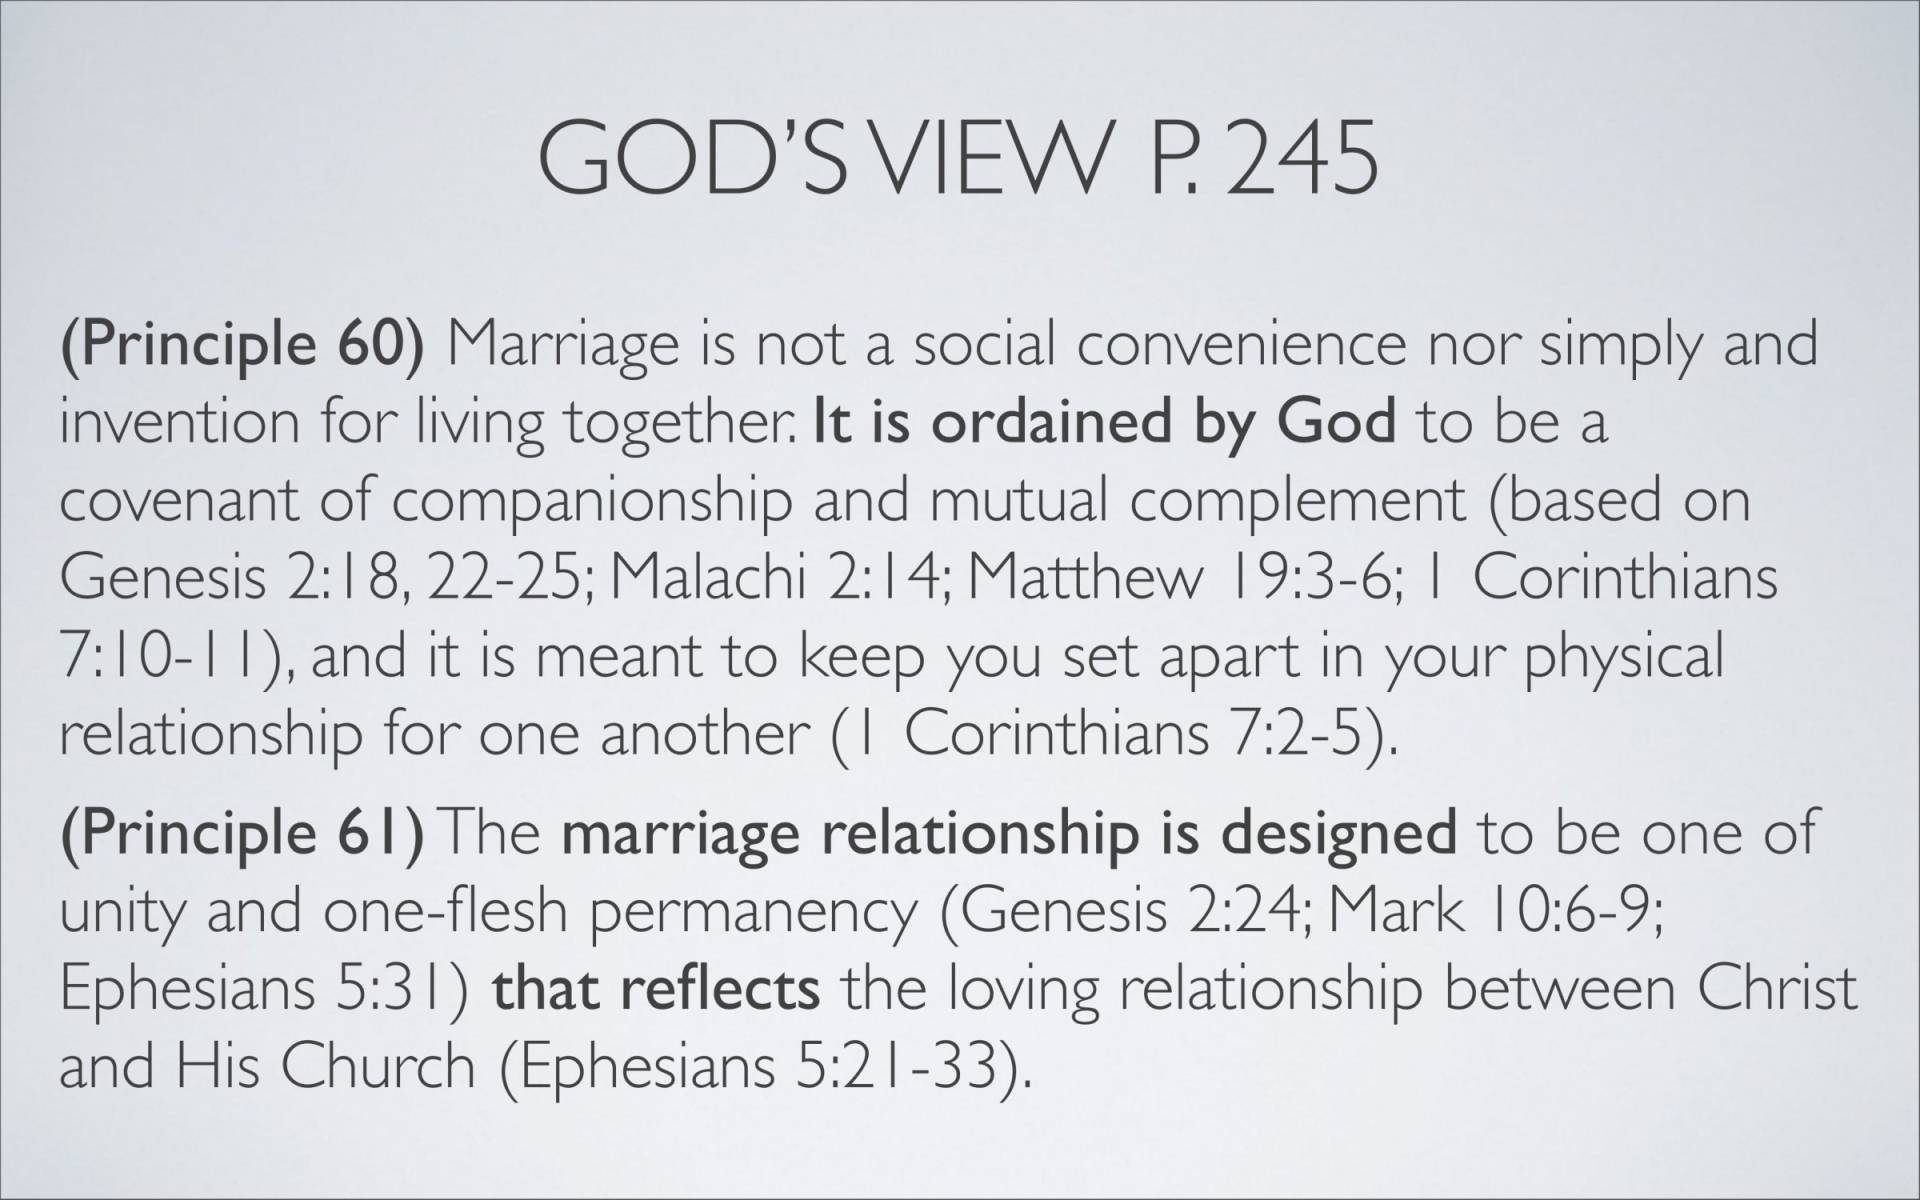 BC&D-36 - Lesson 14 - The Marriage Relationship-19